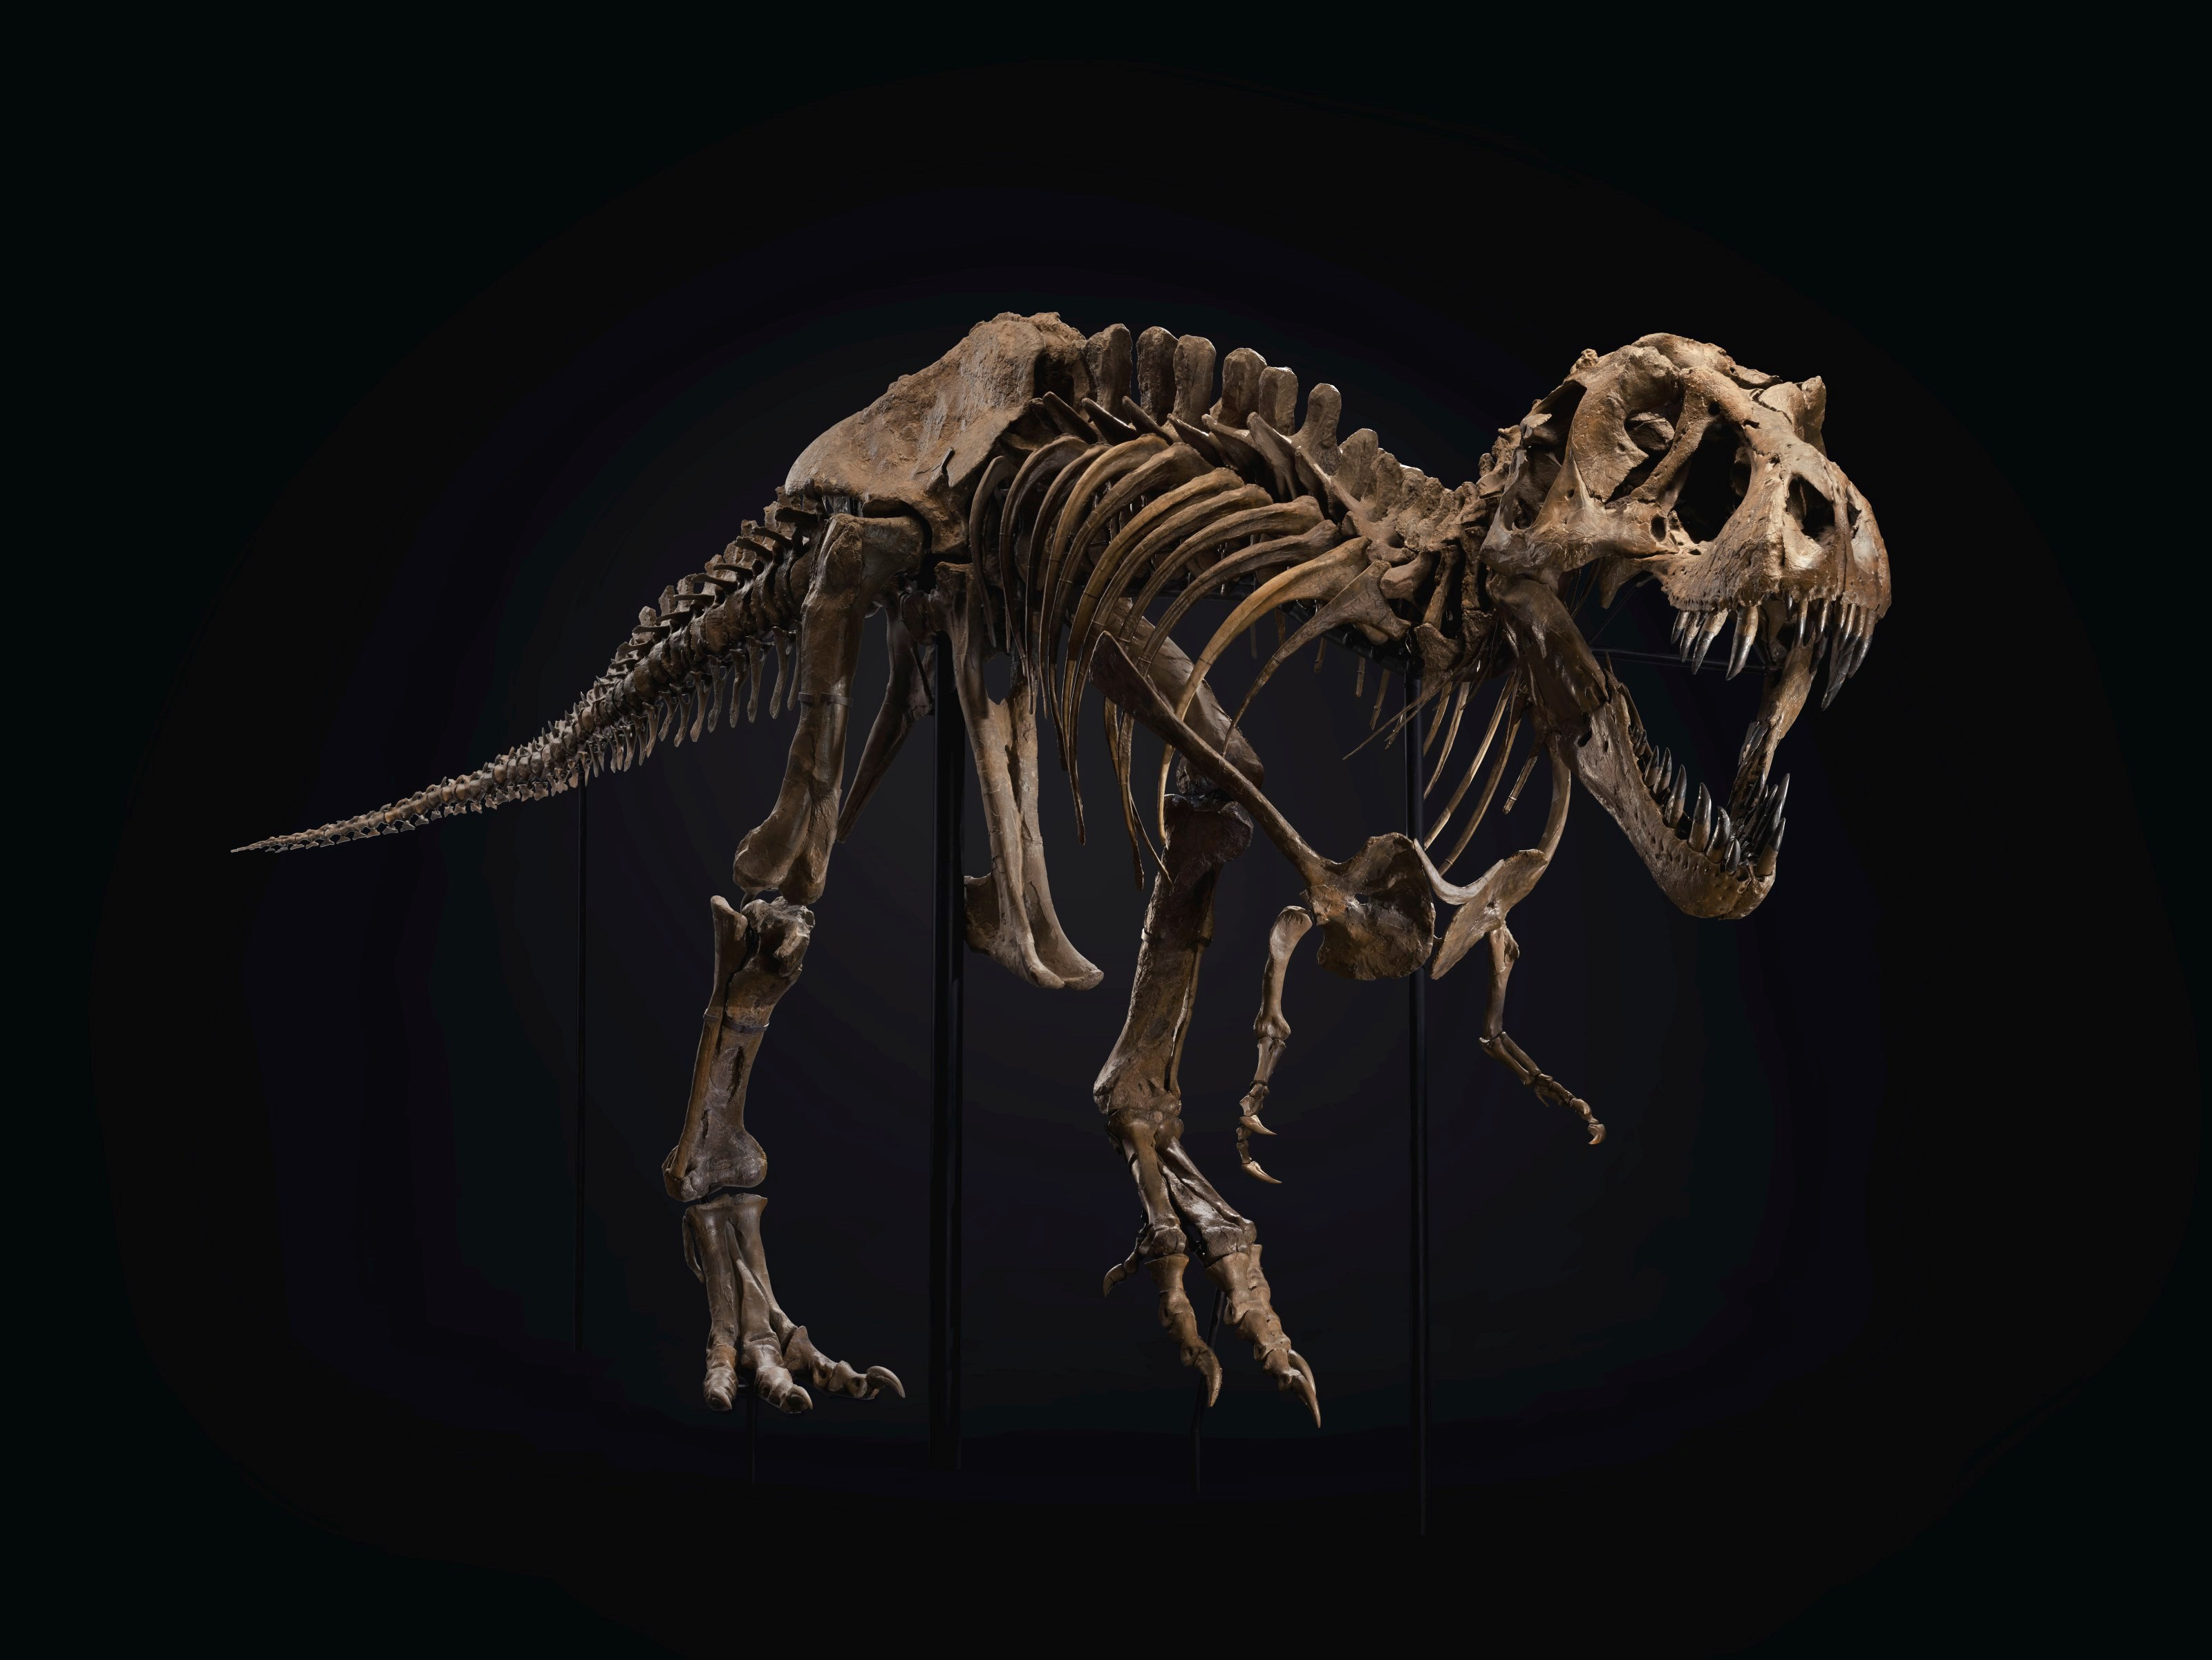 A male Tyrannosaurs rex. From the Hell Creek Formation. Late Cretaceous (circa 67 million years ago). Approx. 190 bones surviving and mounted on custom frame with additional cast elements. A separate display for the original skull and teeth. Size 37 x 13 x 6 ft (1128 x 396 x 183 cm). Sold for $31,847,500 in the 20th Century Evening Sale on 6 October at Christie's in New York